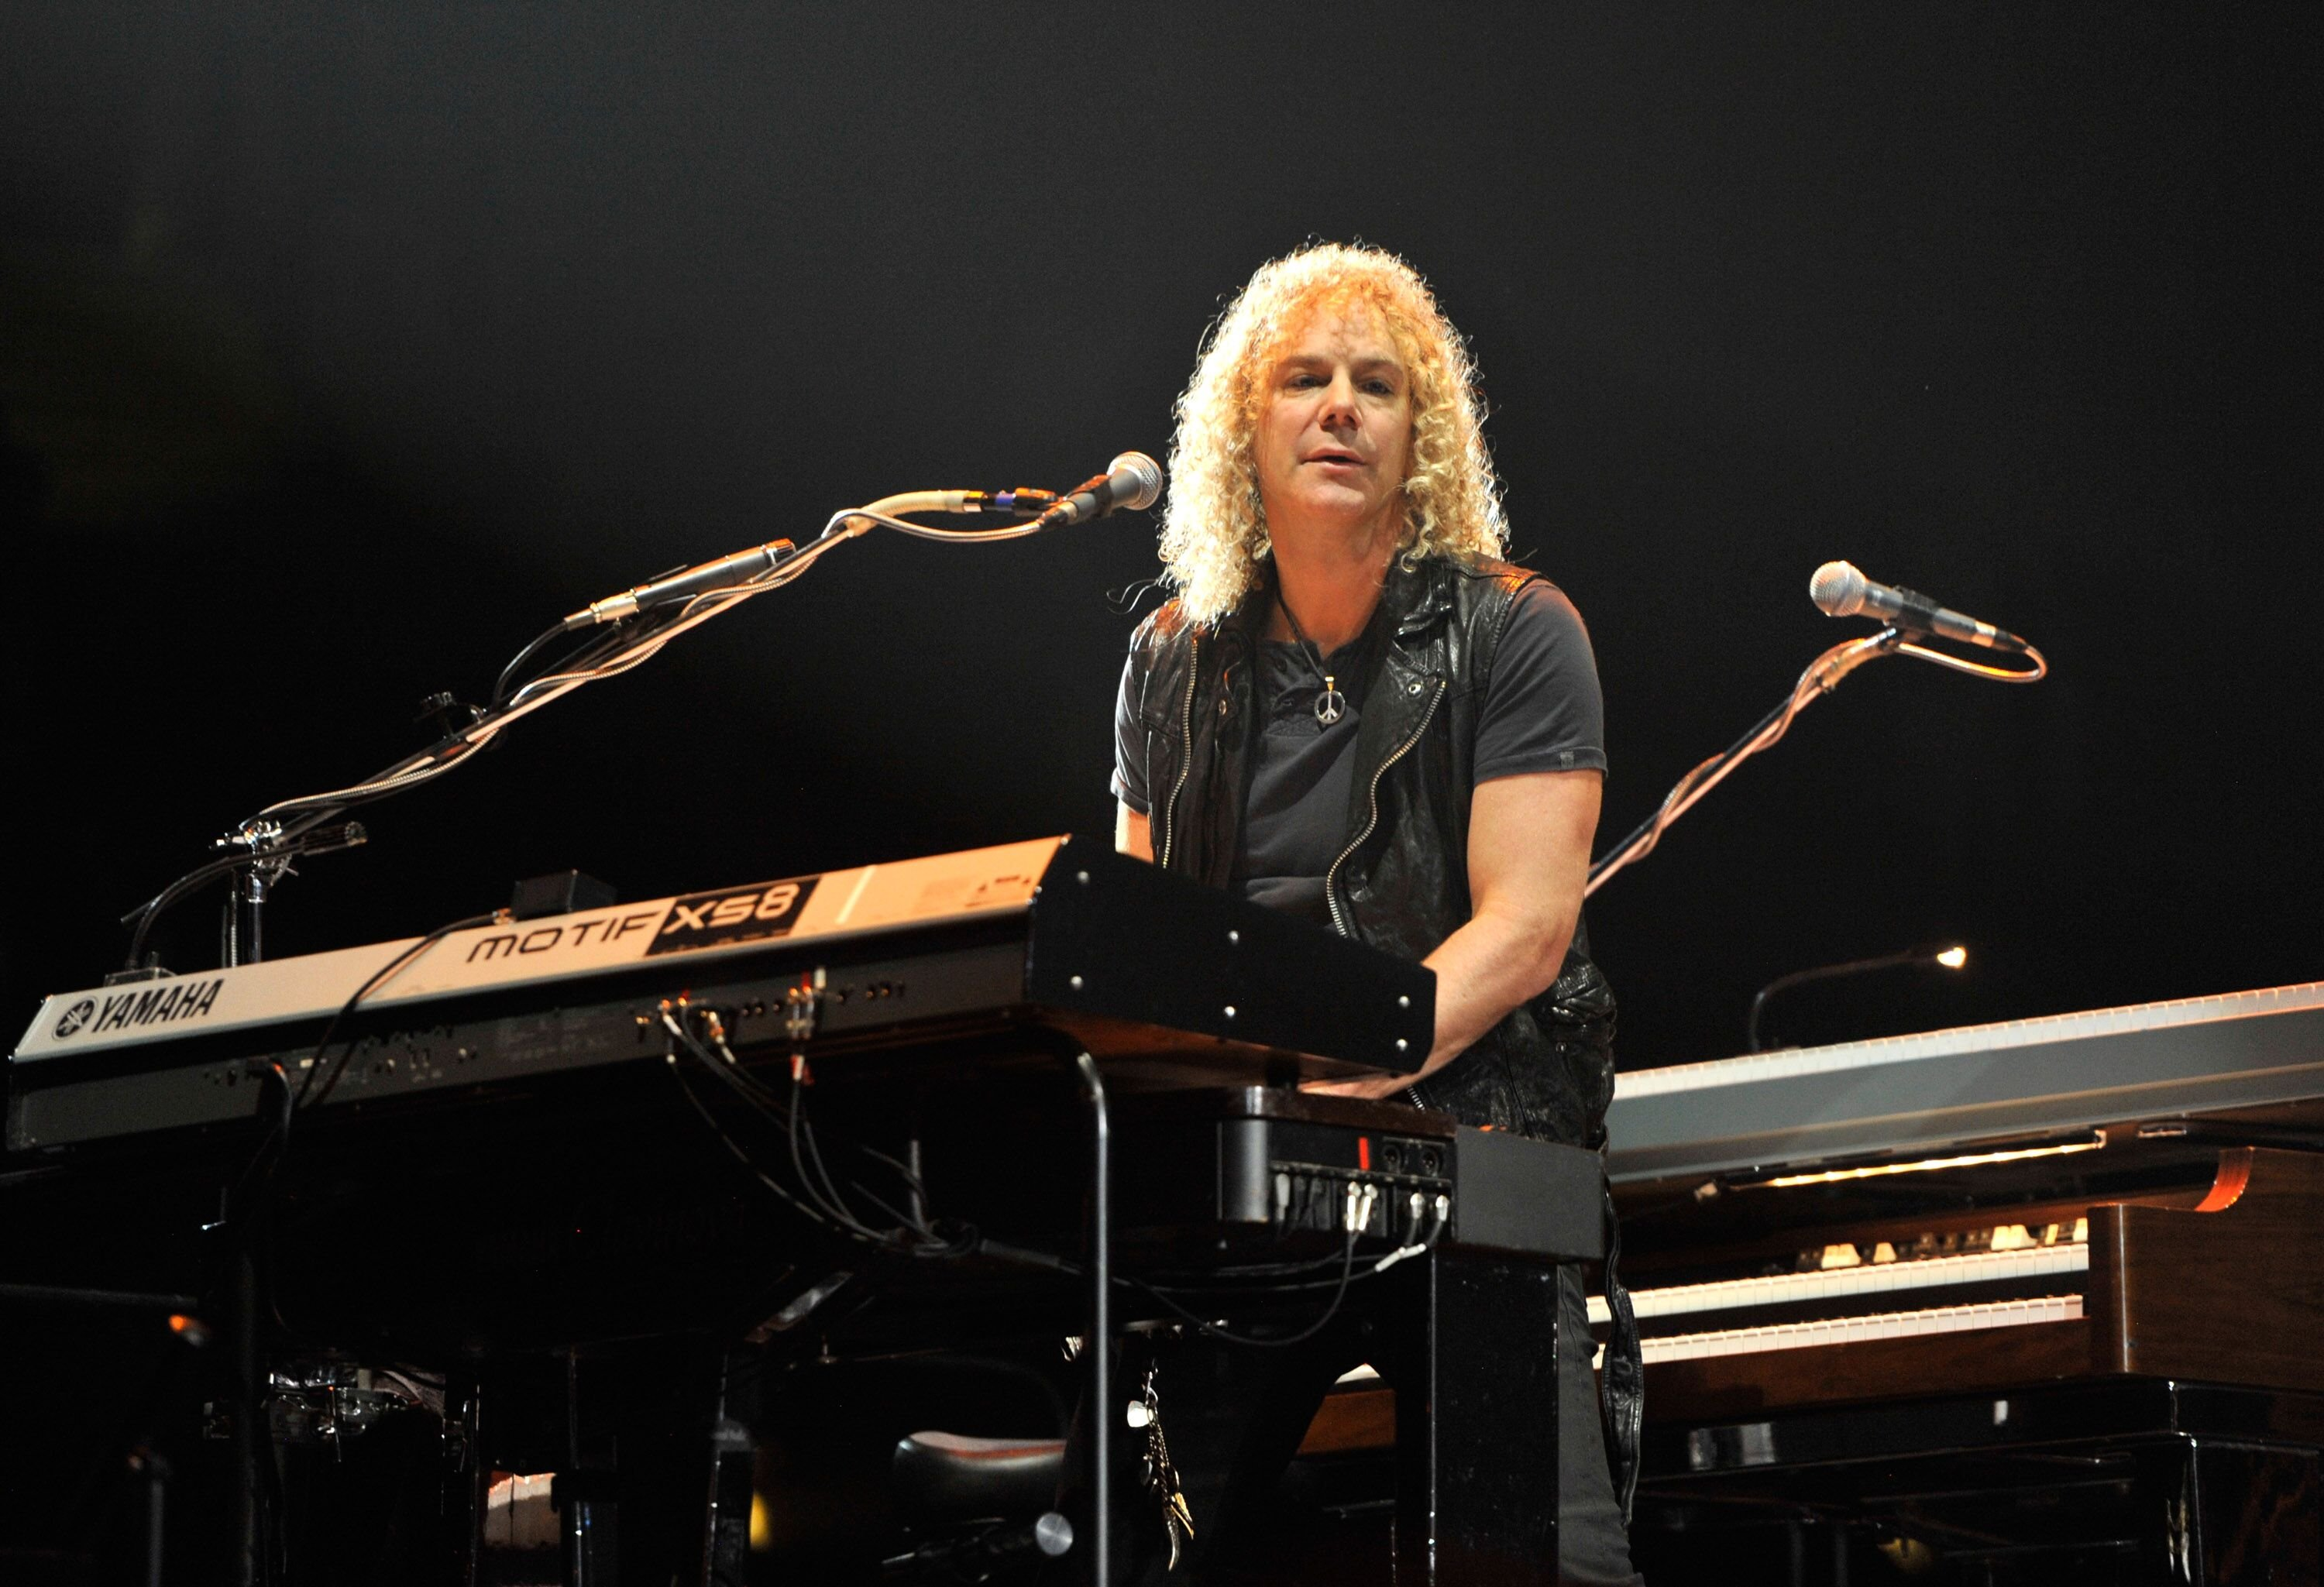 David Bryan of Bon Jovi performs at Nassau Veterans Memorial Coliseum on May 6, 2011, in Uniondale, New York | Photo: Kevin Mazur/WireImage/Getty Images